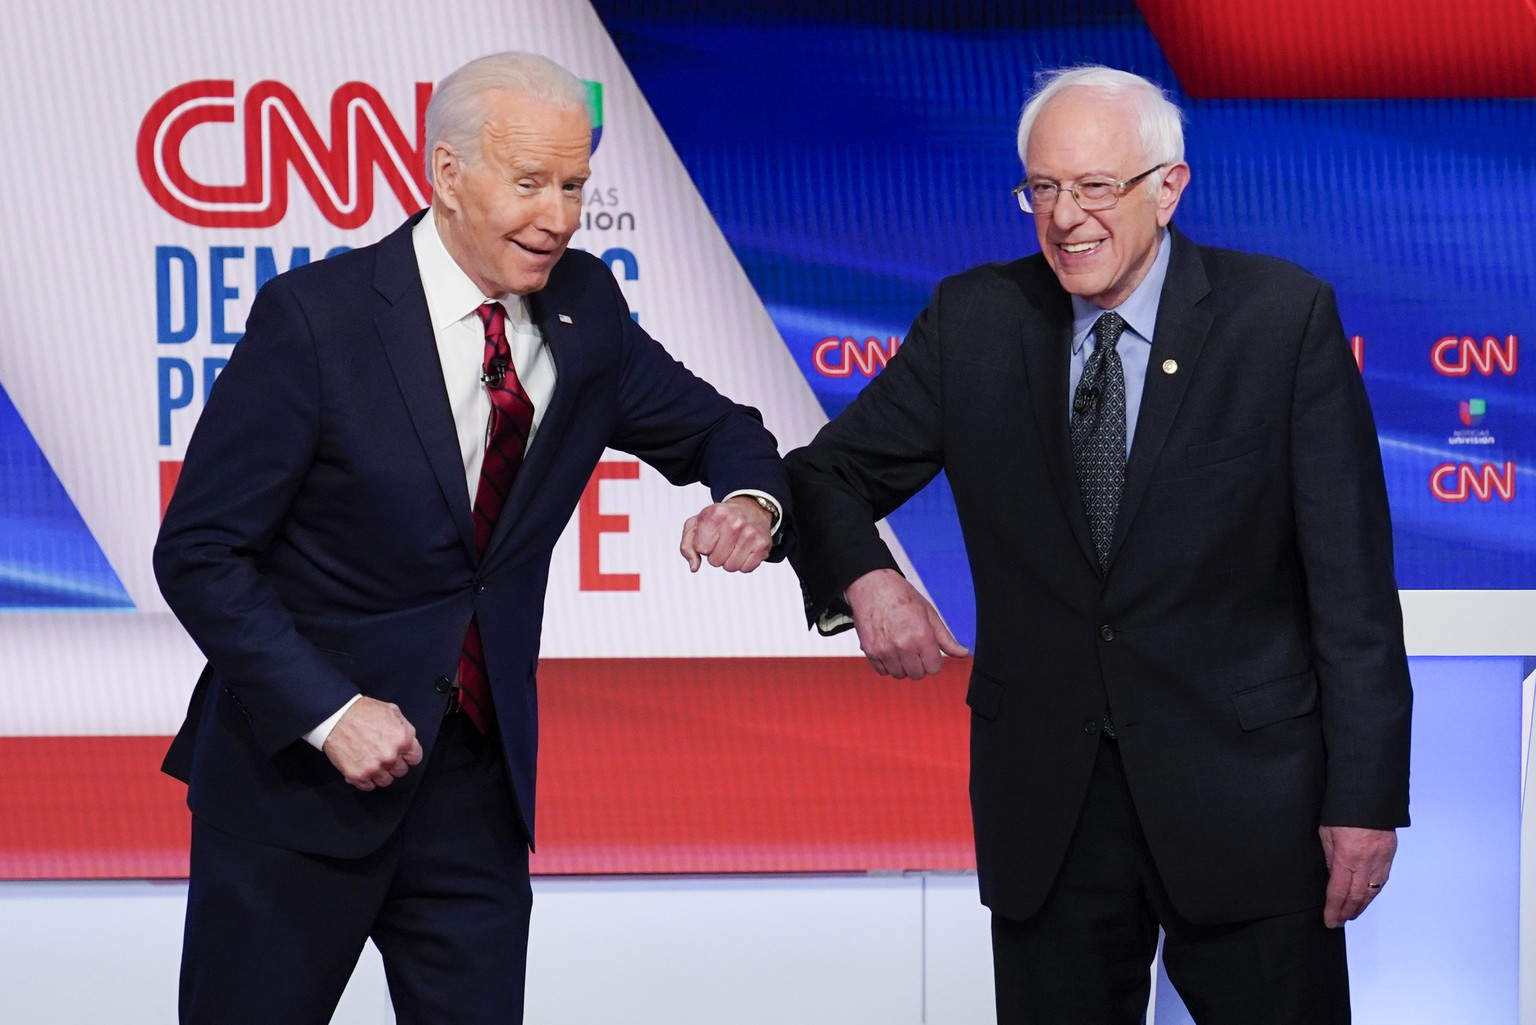 Former Vice President Joe Biden, left, and Sen. Bernie Sanders, I-Vt., right, greet each other before they participate in a Democratic presidential primary debate at CNN Studios in Washington, Sunday, March 15, 2020. (AP Photo/Evan Vucci) Joe Biden,Bernie Sanders